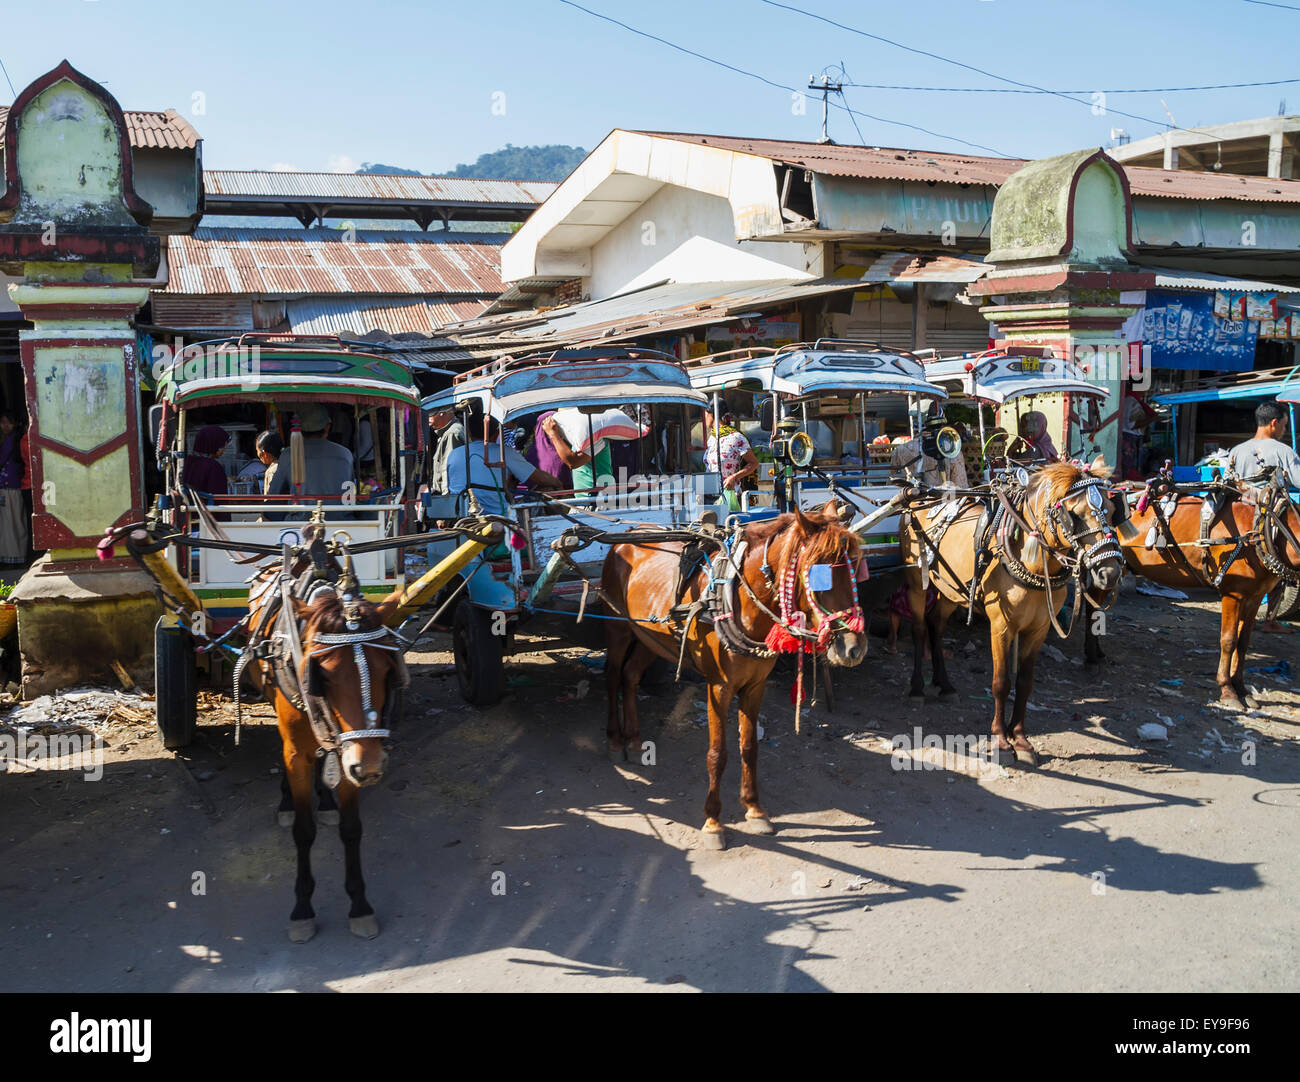 Cidomos, horse-drawn carriages, Lombok, West Nusa Tenggara, Indonesia - Stock Image